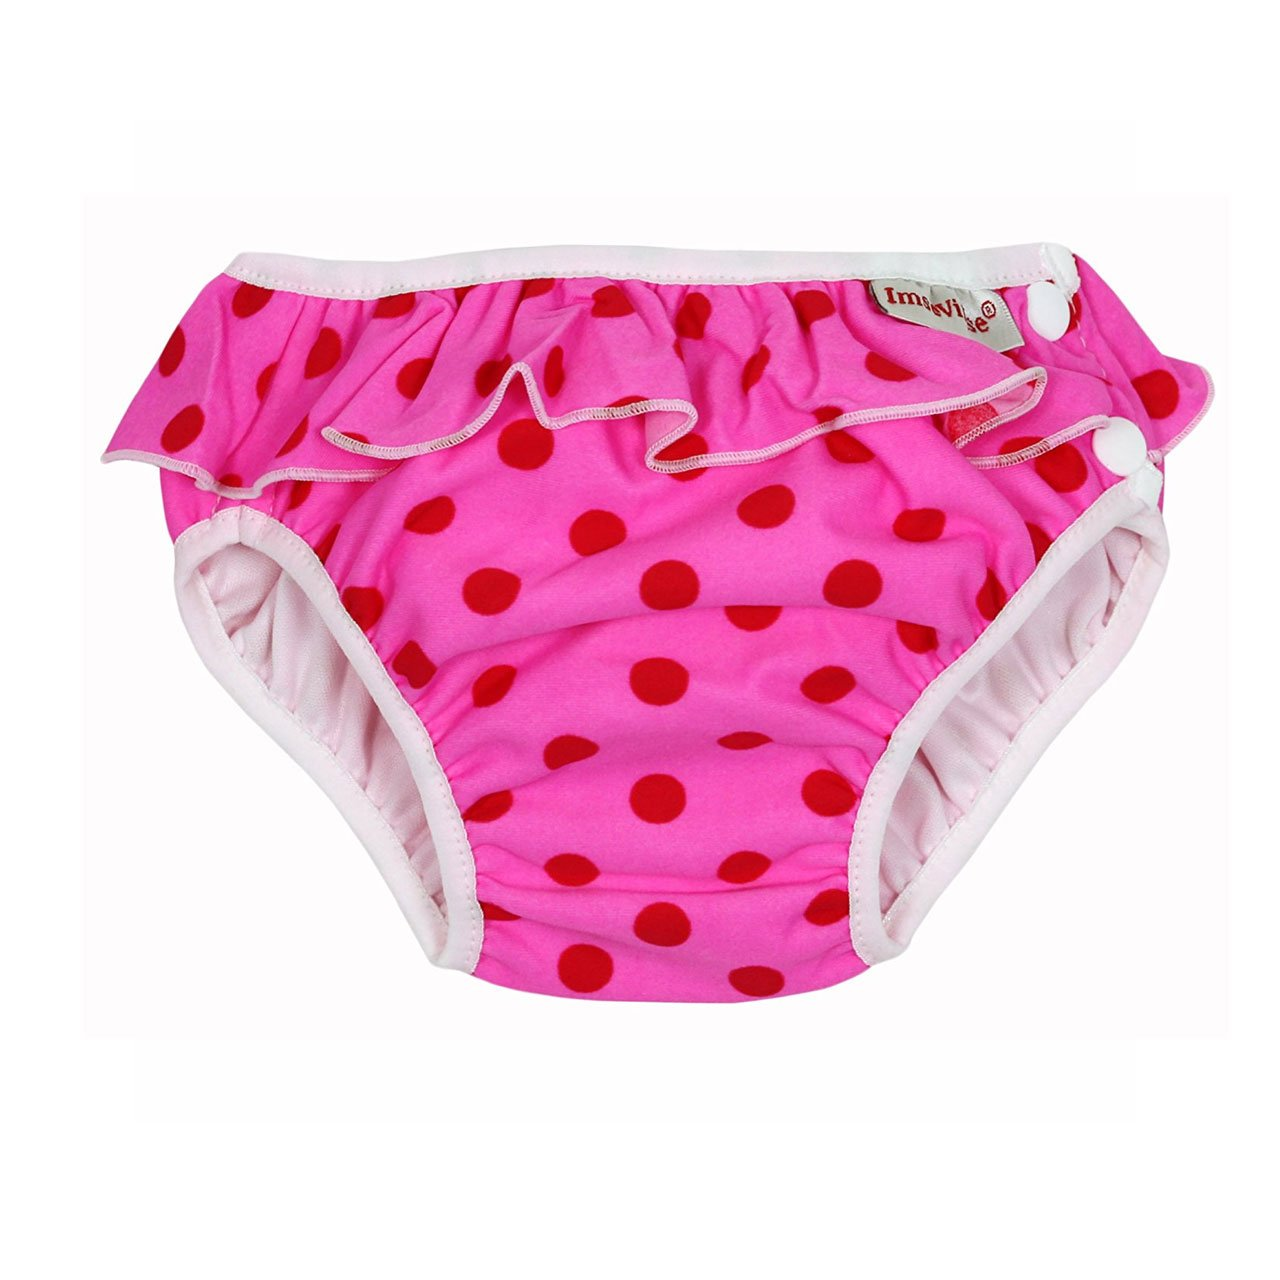 Imse Vimse Reusable Swim Nappies Imse Vimse Nappies Pink Dot with Frill / Newborn (4-6kg) at Little Earth Nest Eco Shop